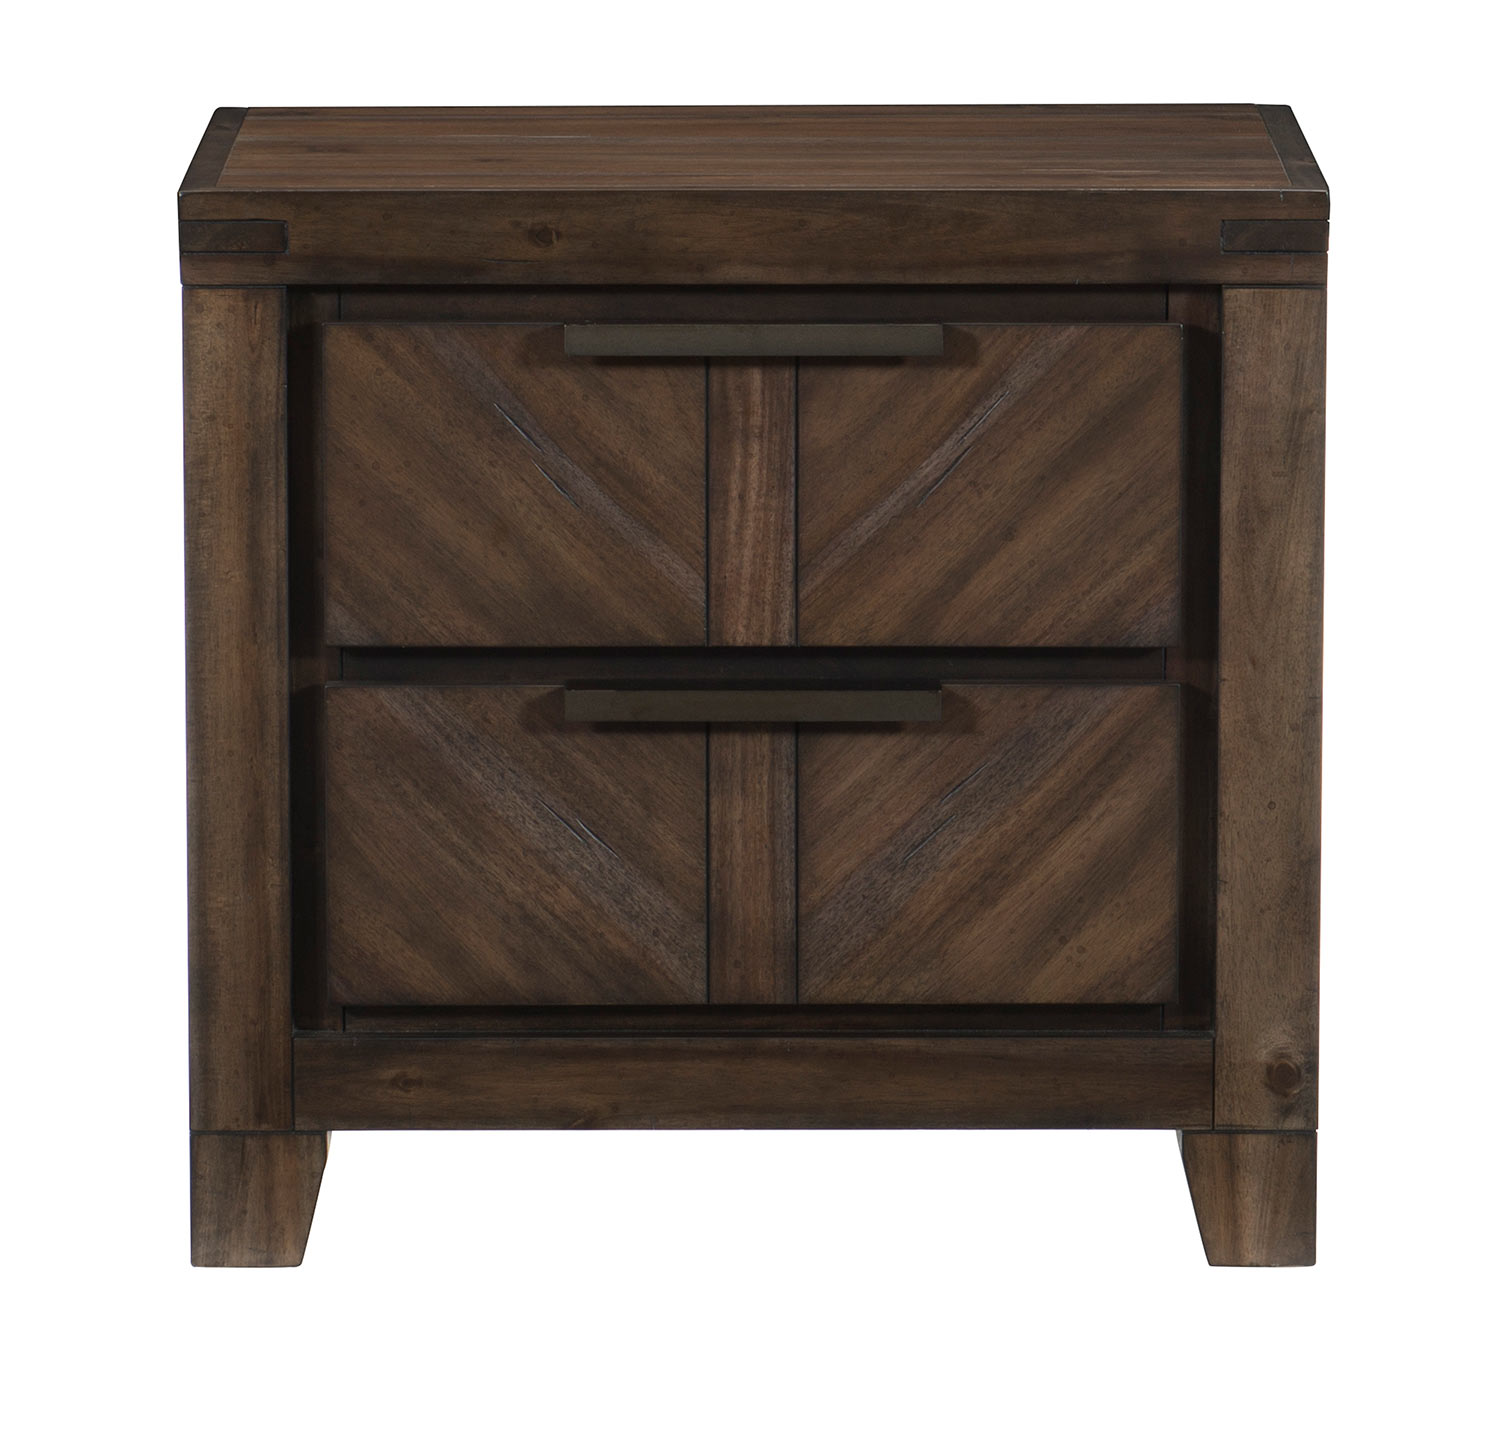 Homelegance Parnell Night Stand - Rustic Cherry